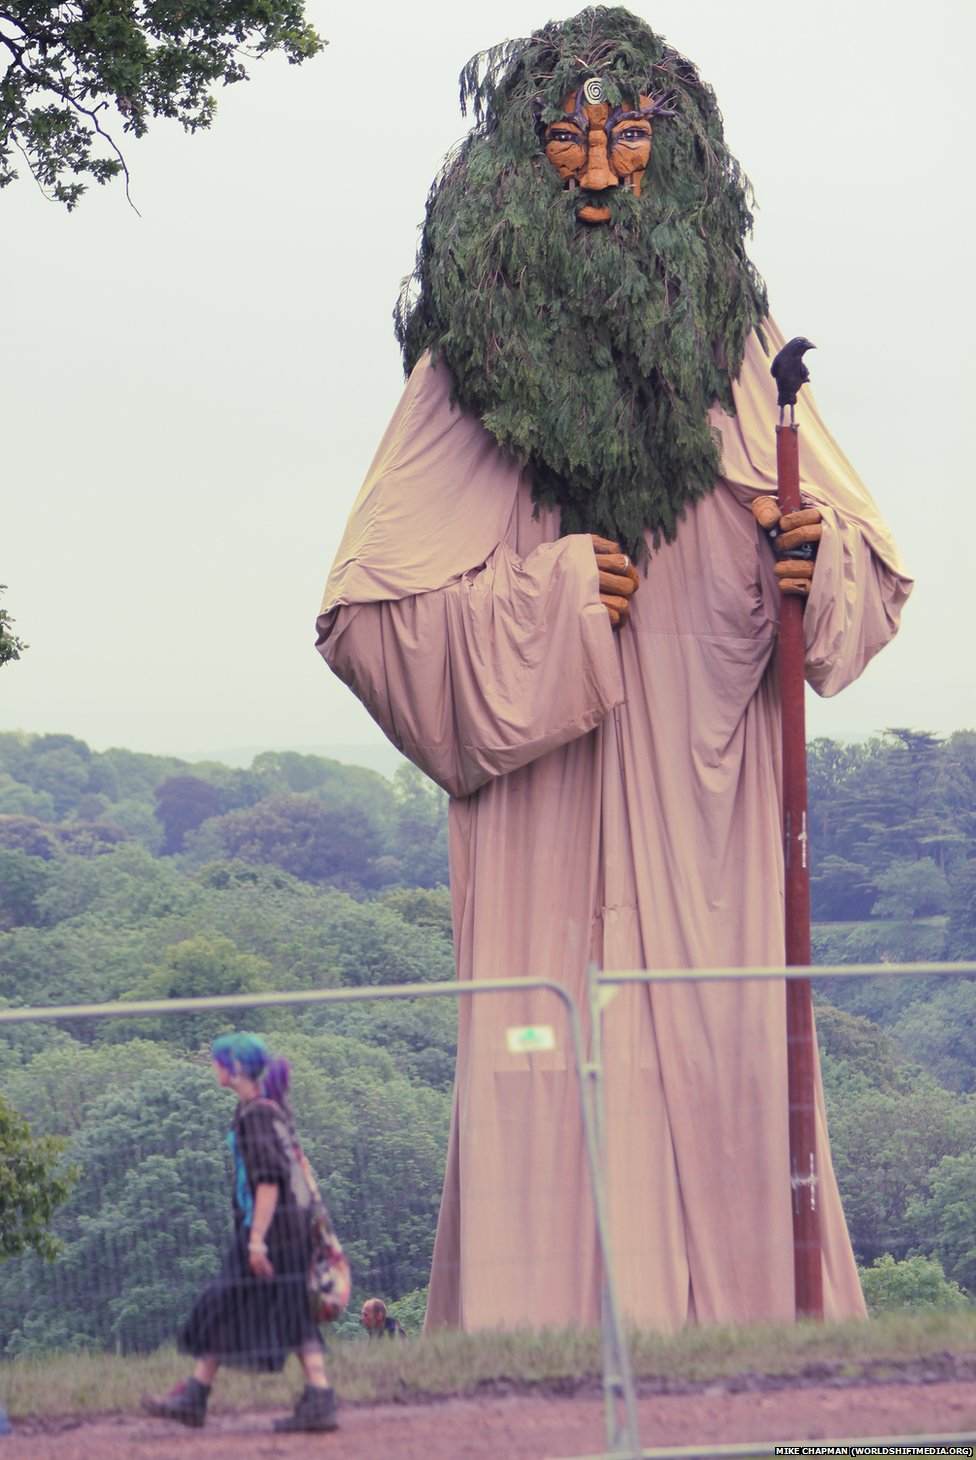 A 50ft (15m) fabric statue of Celtic sea god Manannan, created by artists from the Isle of Man, at the ninth annual Sunrise Celebration, in Piercefield Park